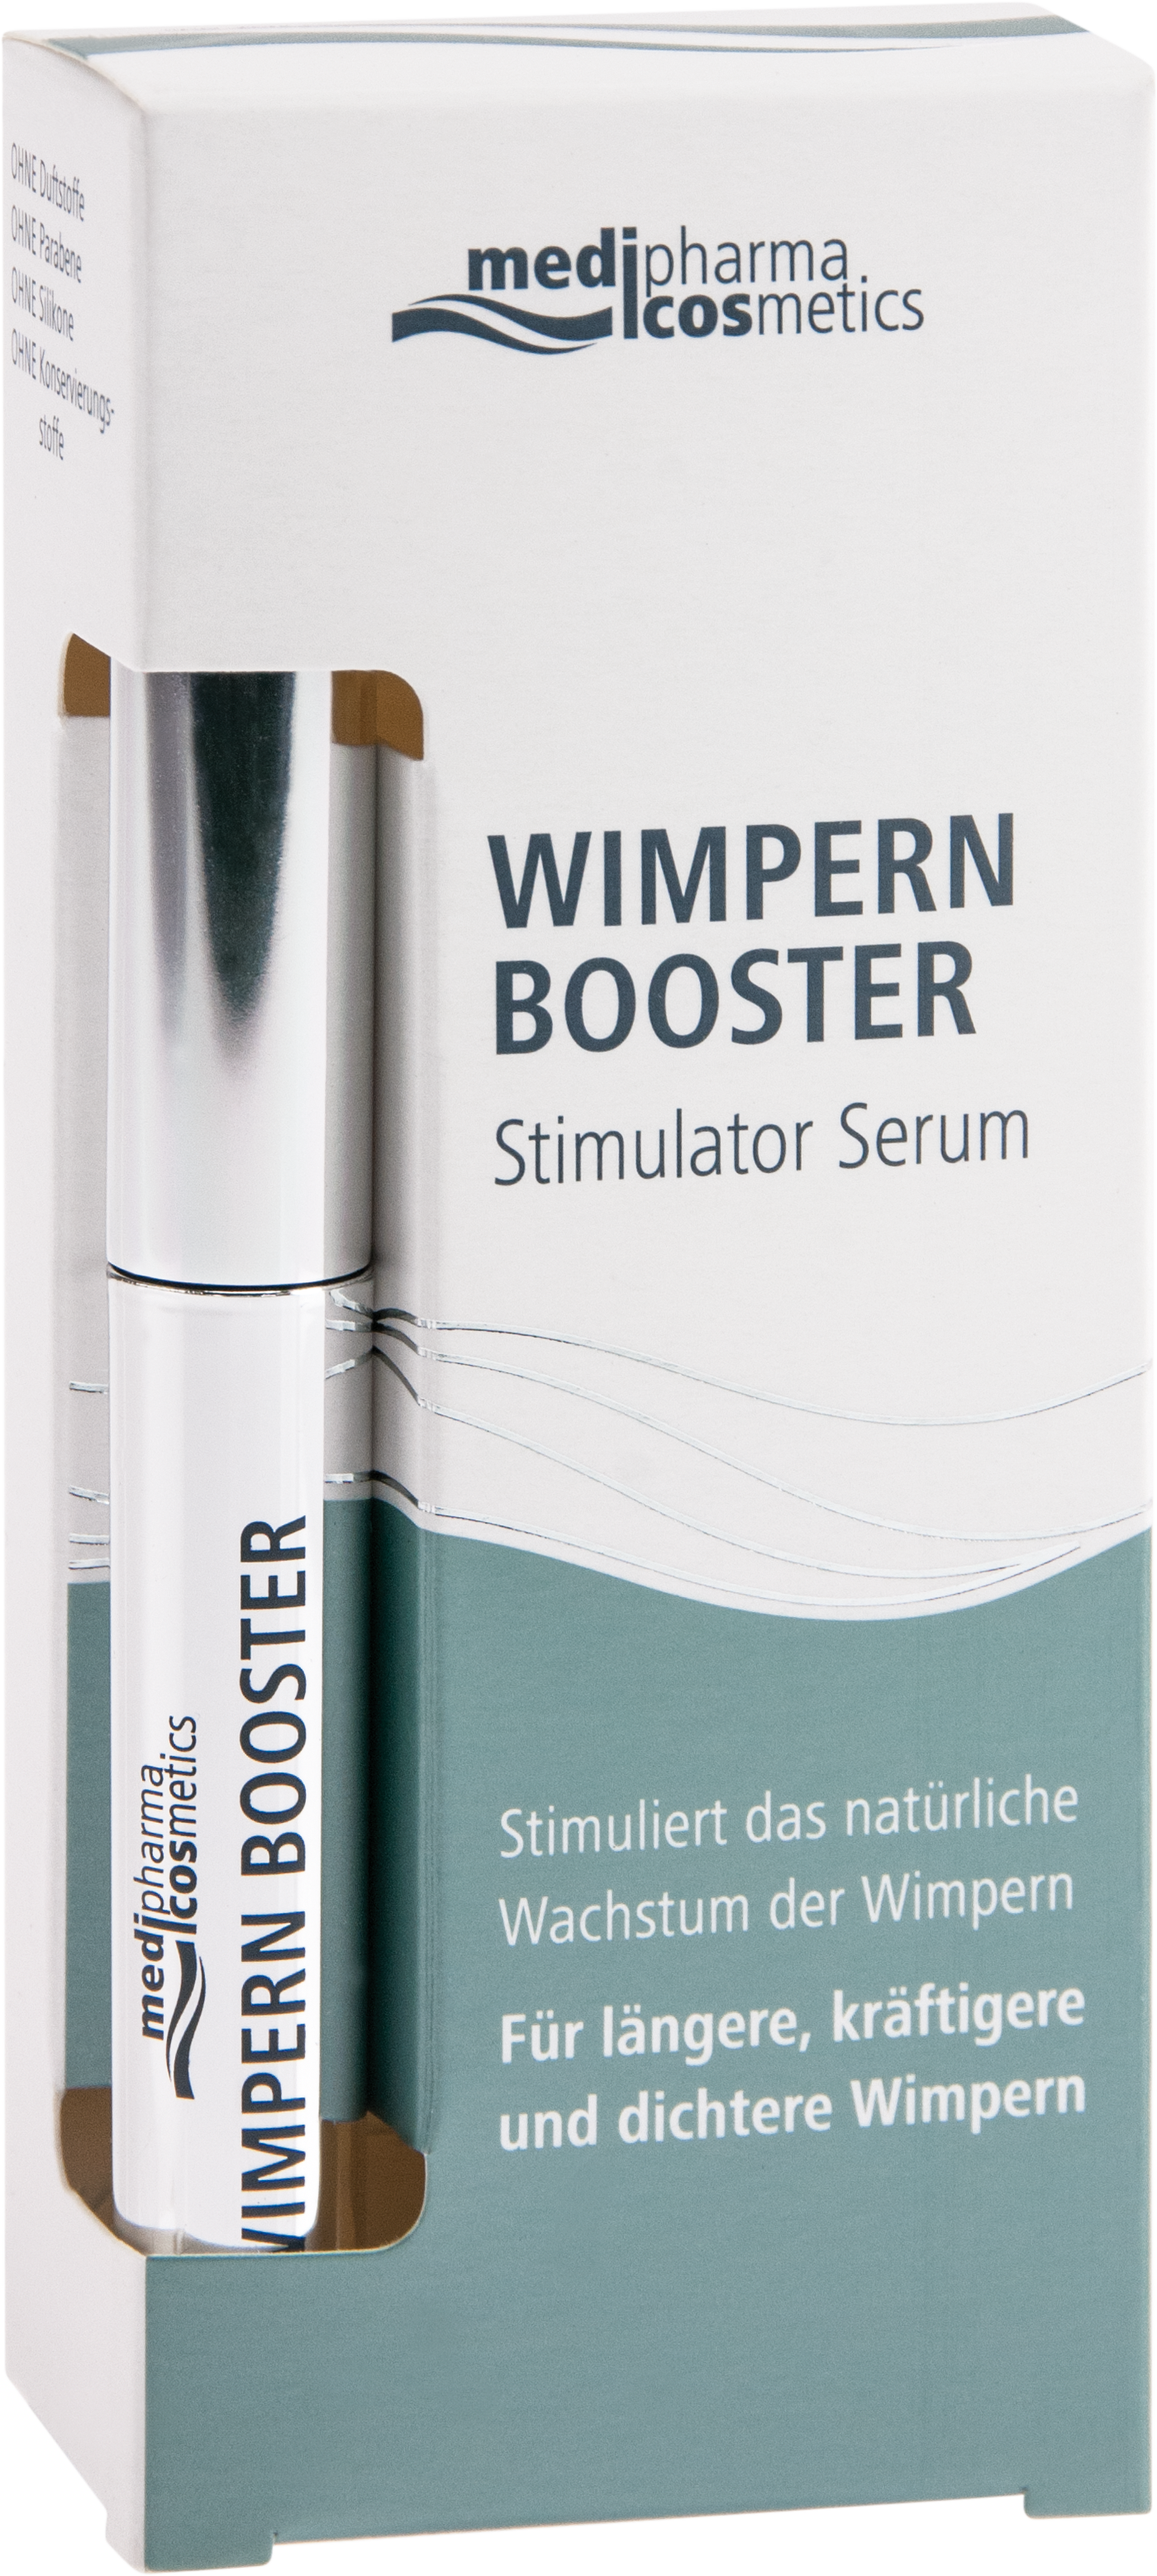 WIMPERN BOOSTER